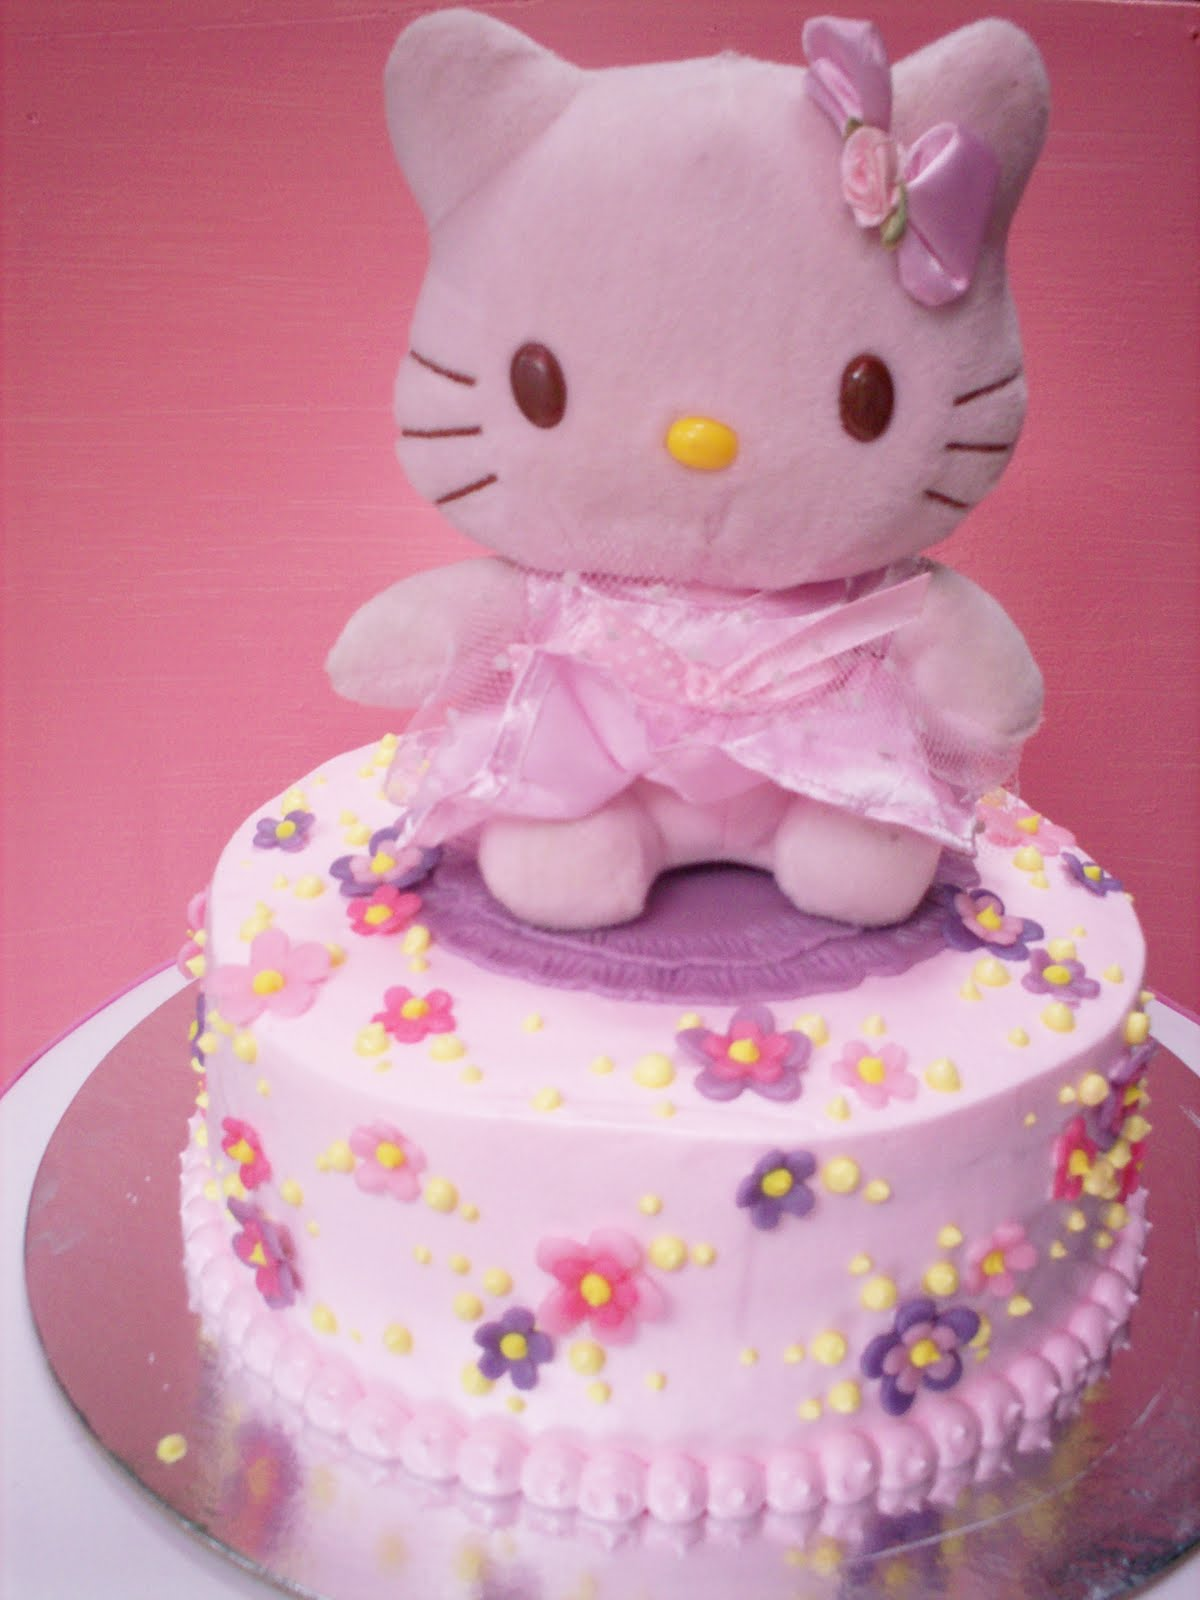 Birthday Cake Pictures Hello Kitty : PaupiCakes: Hello Kitty First Birthday Cake